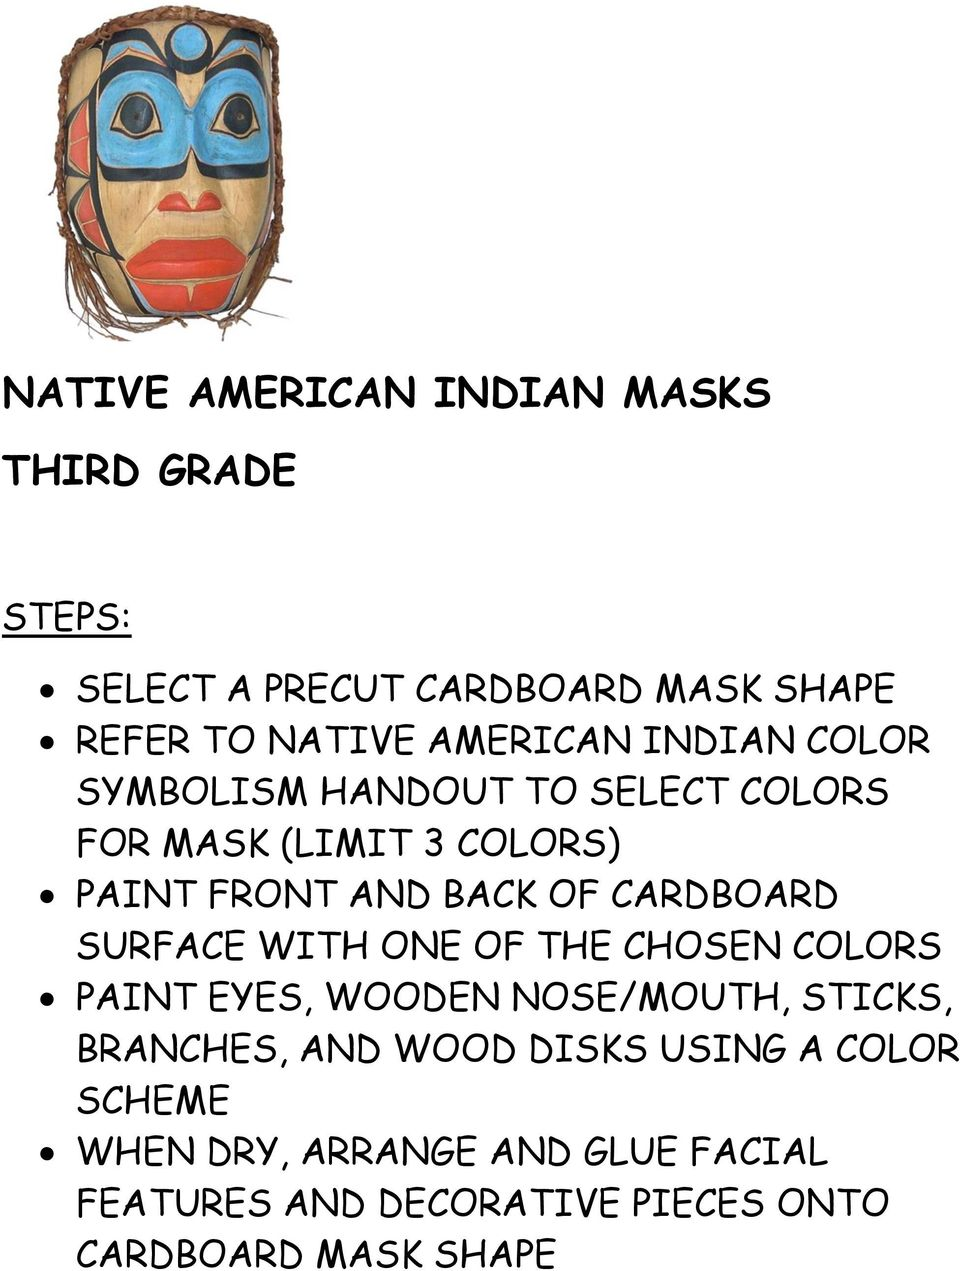 CARDBOARD SURFACE WITH ONE OF THE CHOSEN COLORS PAINT EYES, WOODEN NOSE/MOUTH, STICKS, BRANCHES, AND WOOD